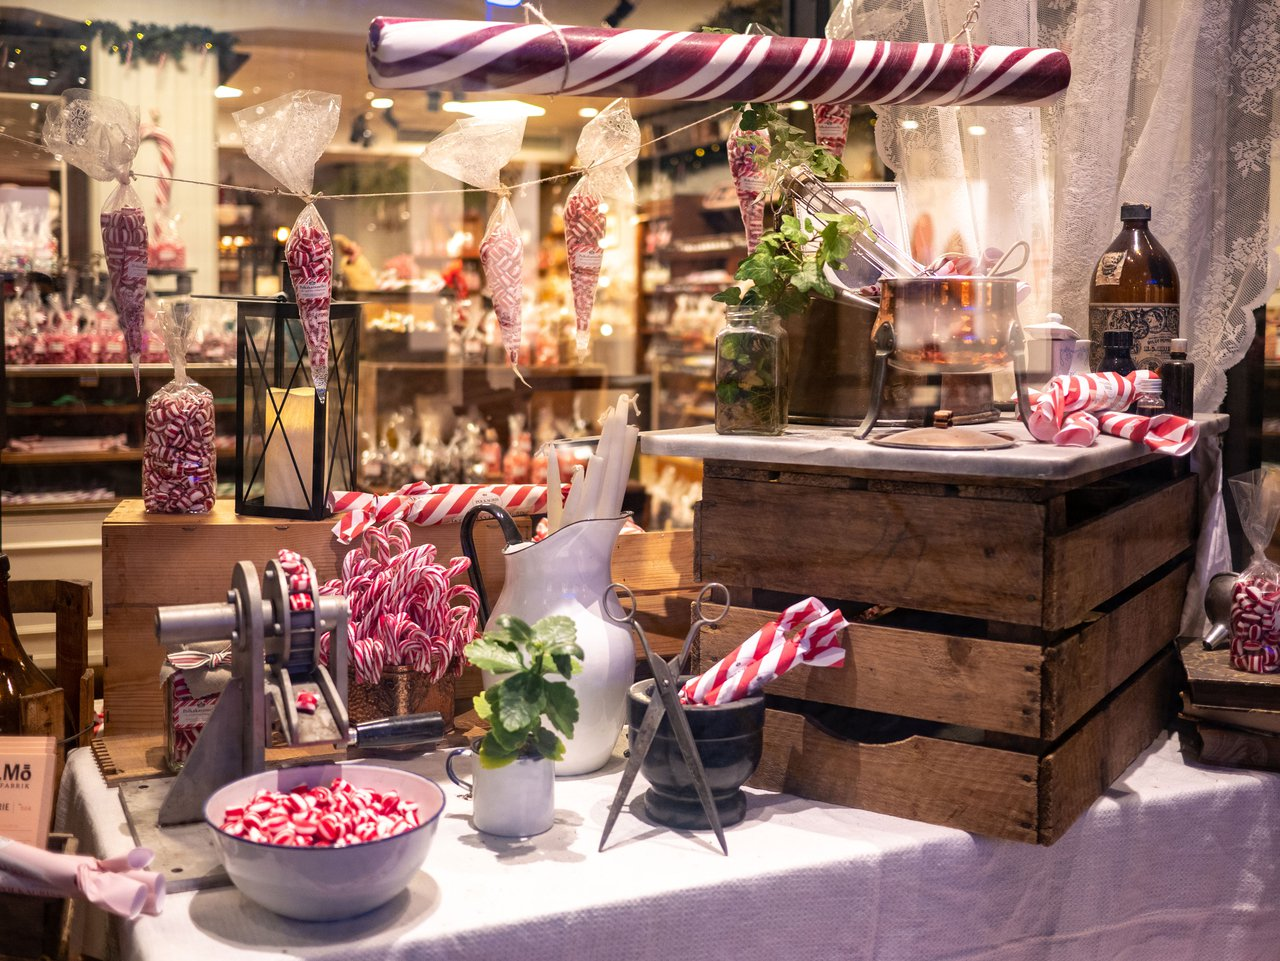 Christmas window display of red and white candy at Gamla stans polkagriskokeri in Stockholm.